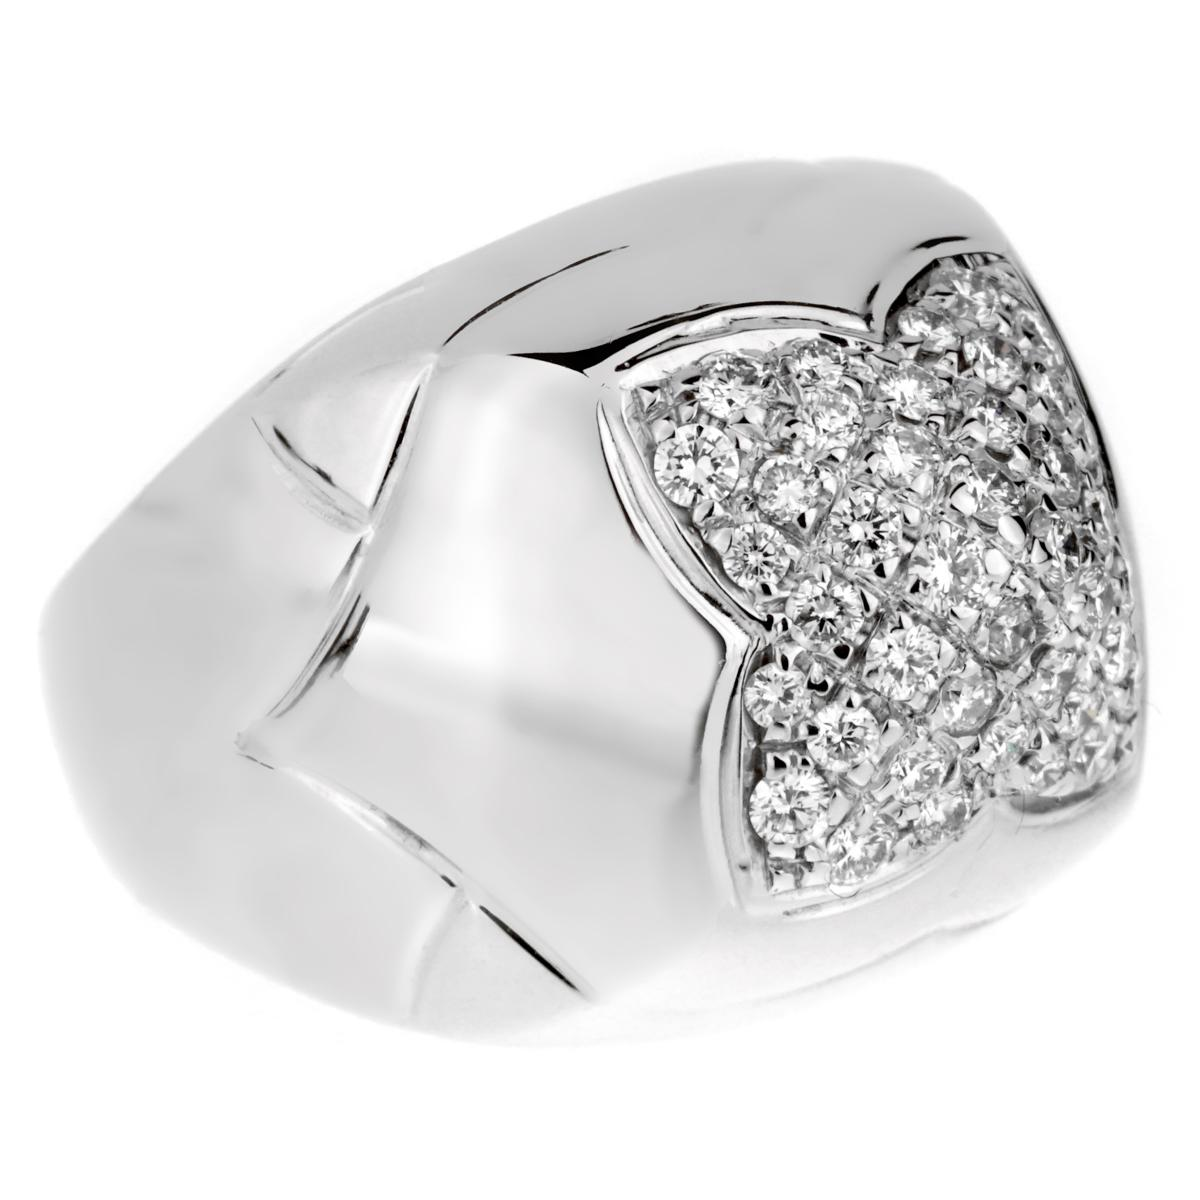 6f8f6230761 Pyramid Rings - 64 For Sale on 1stdibs